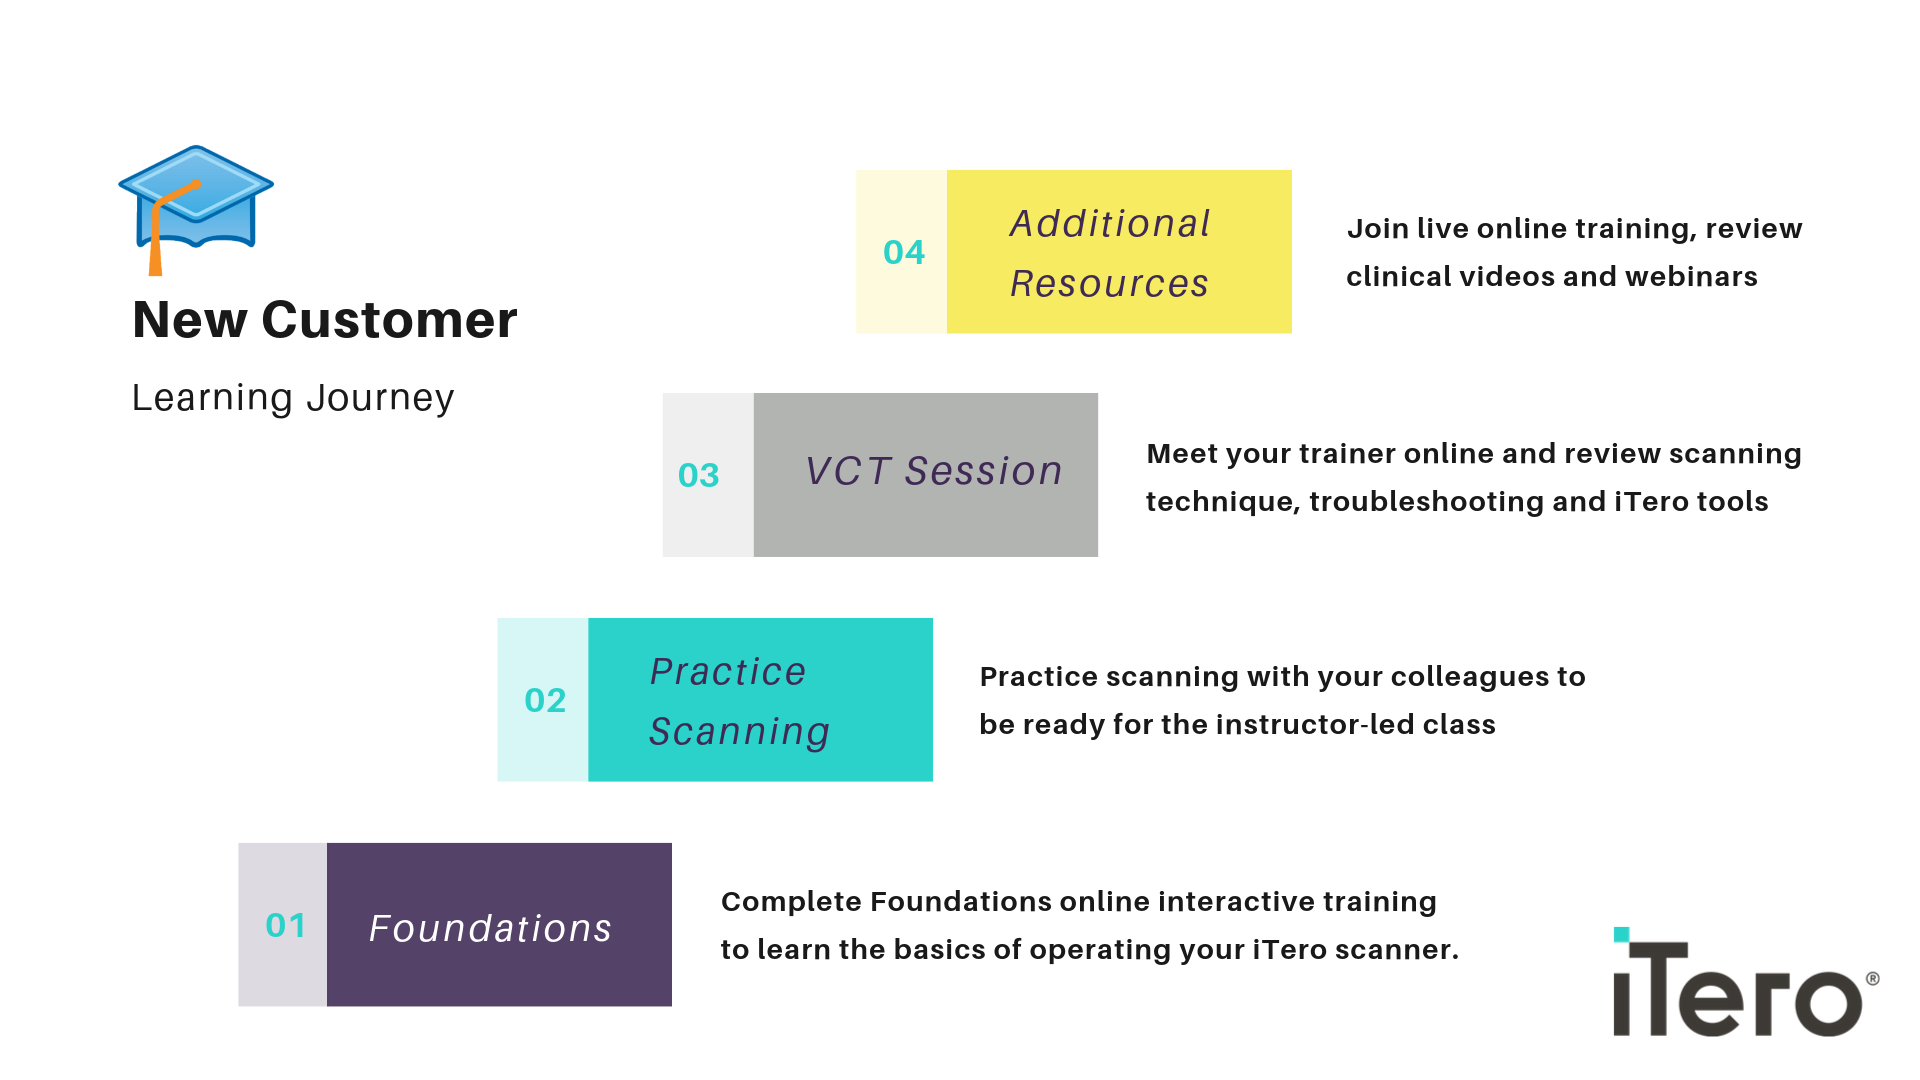 New Customer Learning Overview